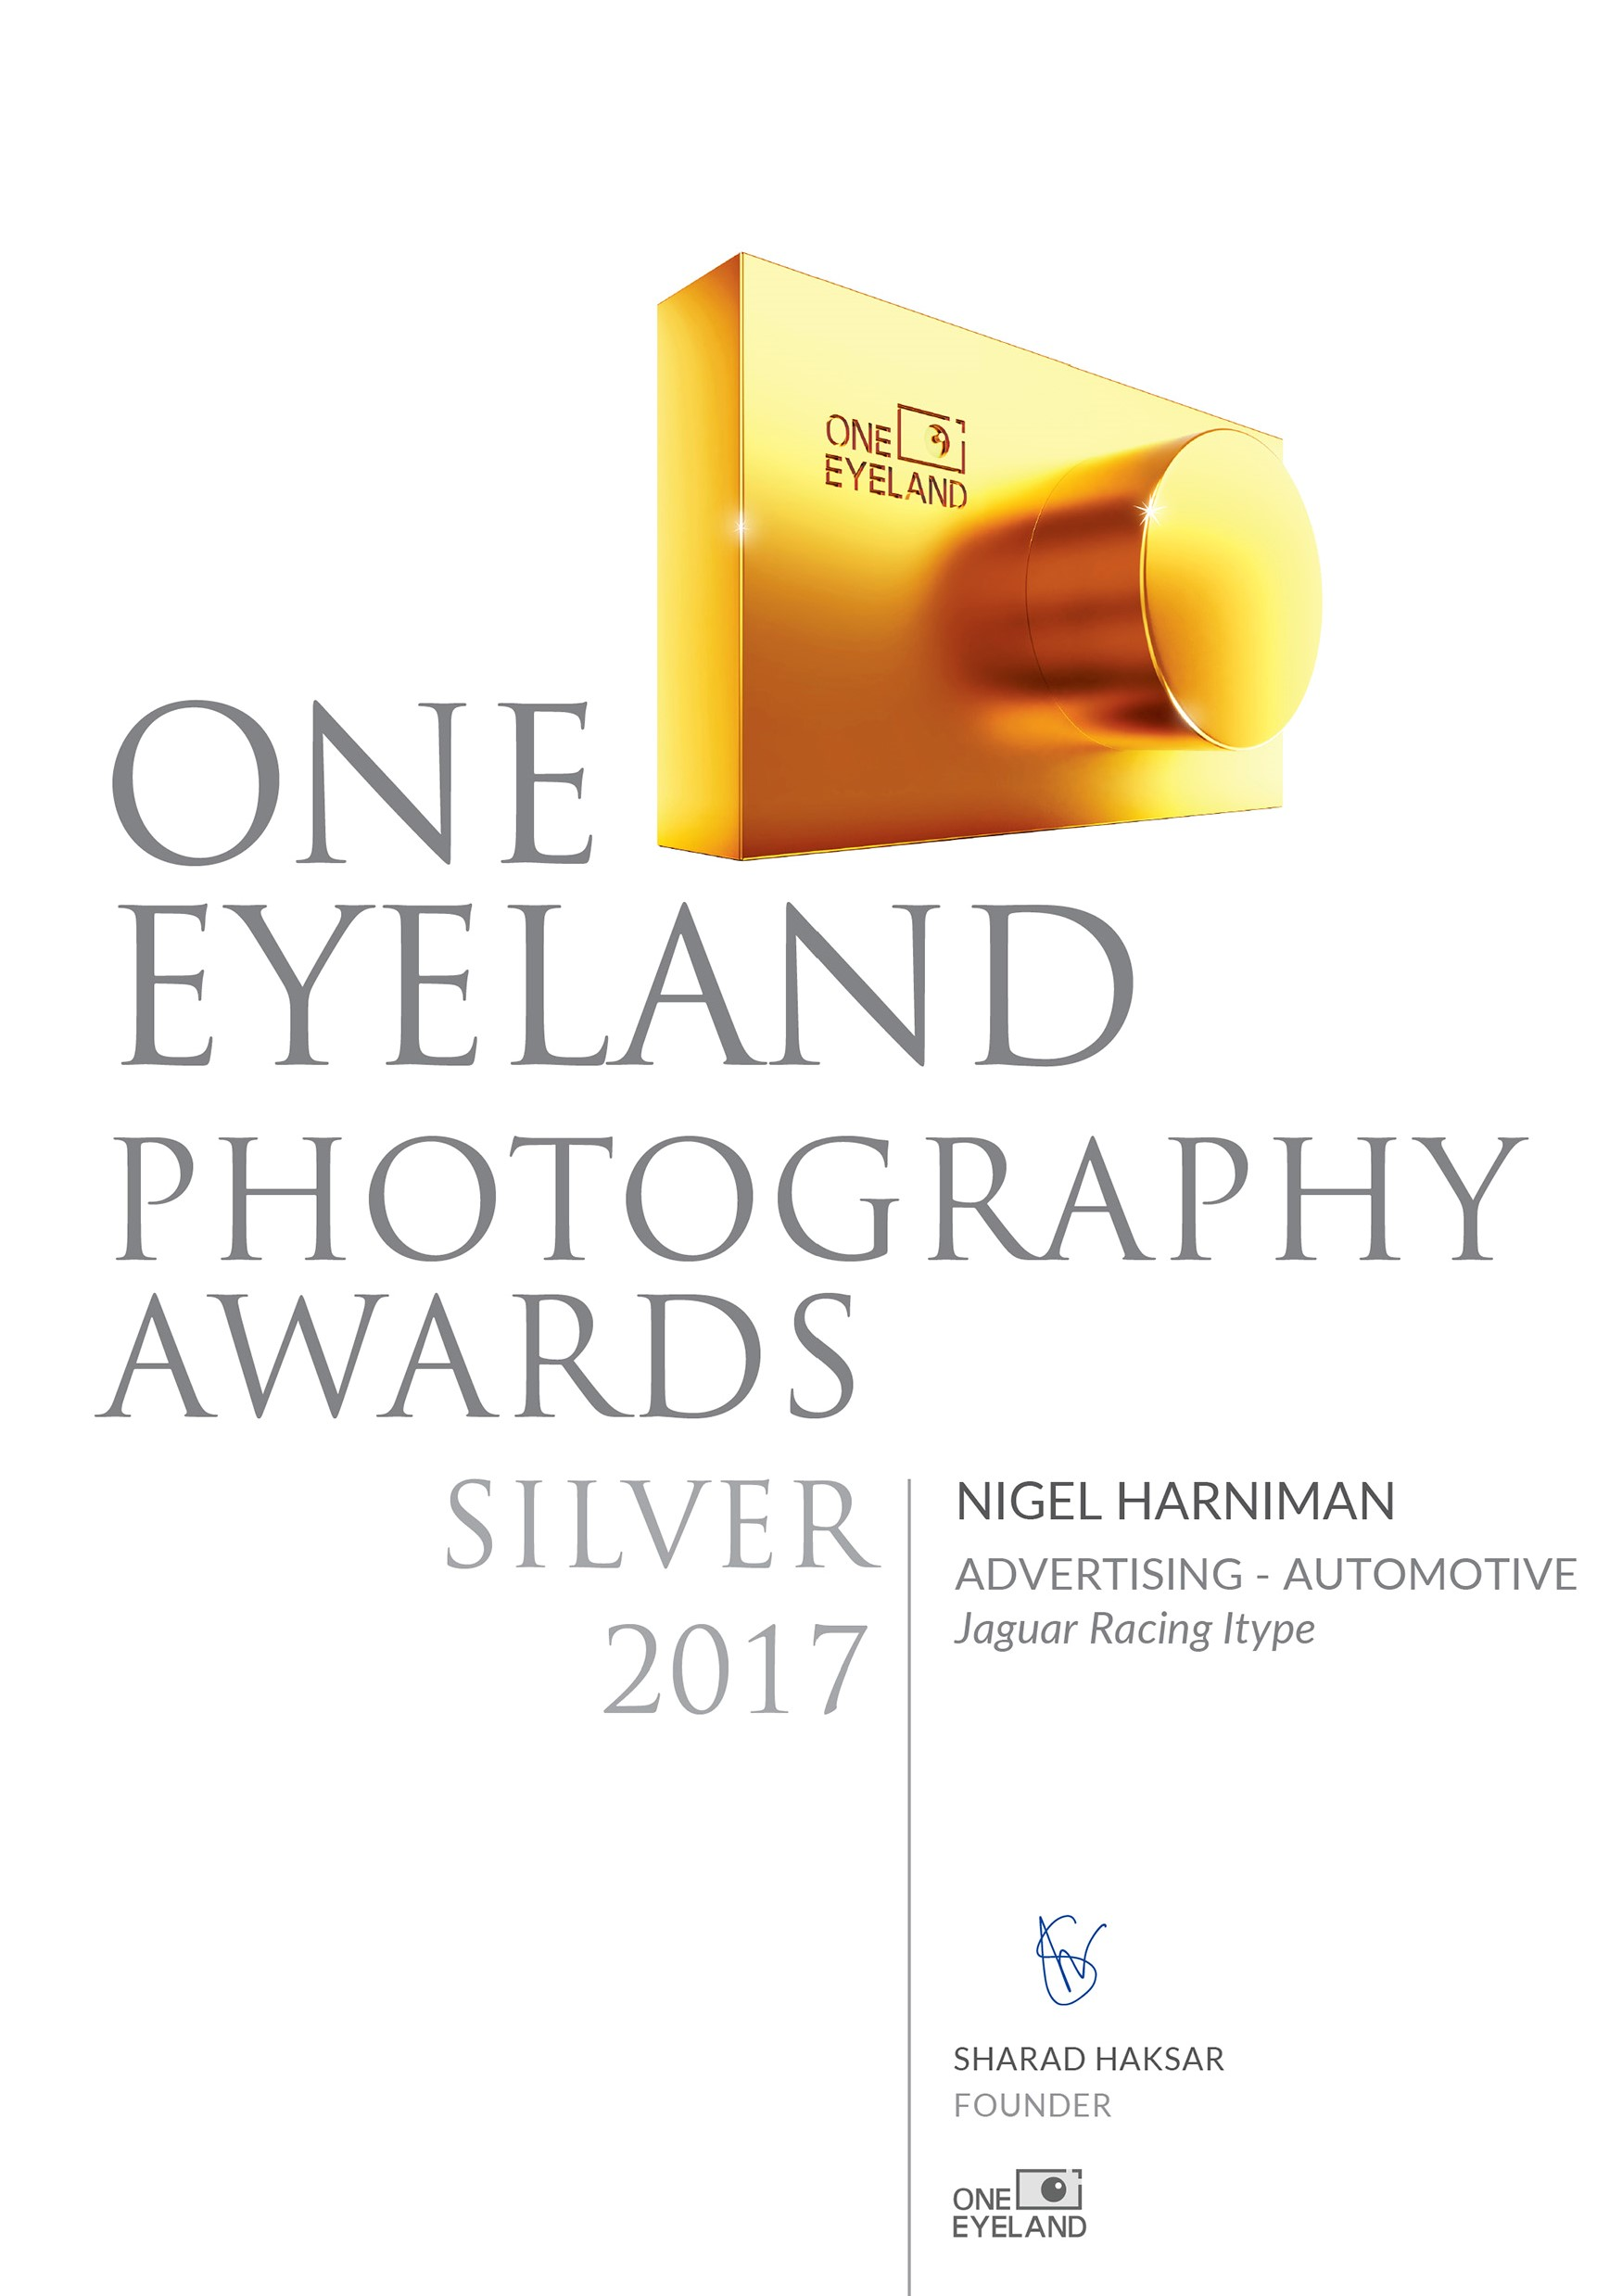 Awards in OneEyeland